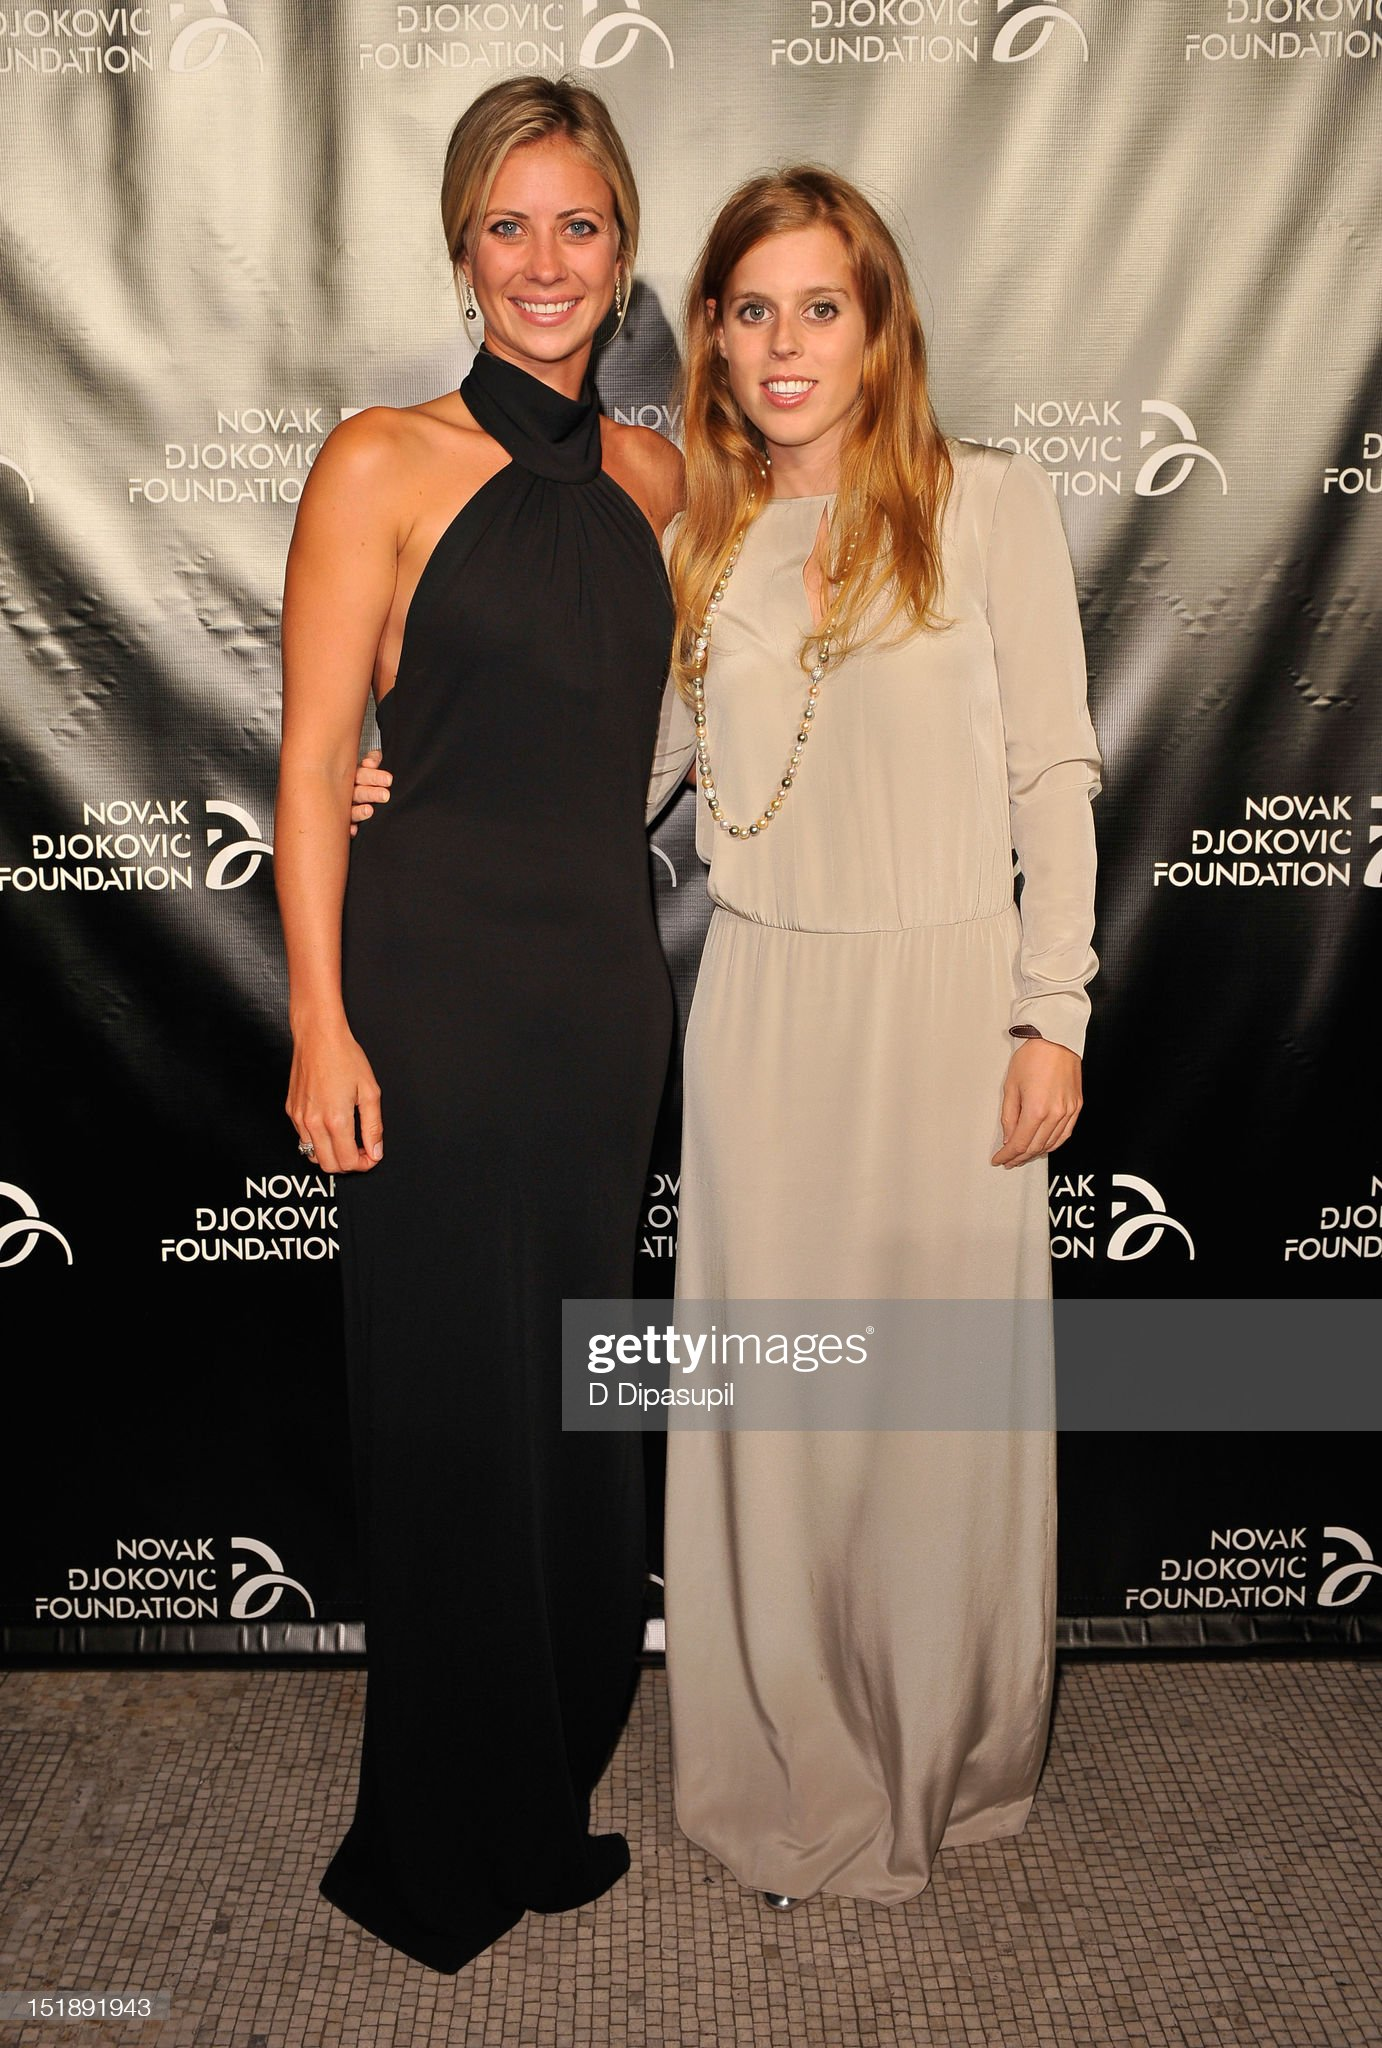 The Novak Djokovic Foundation Inaugural Dinner - Red Carpet : News Photo